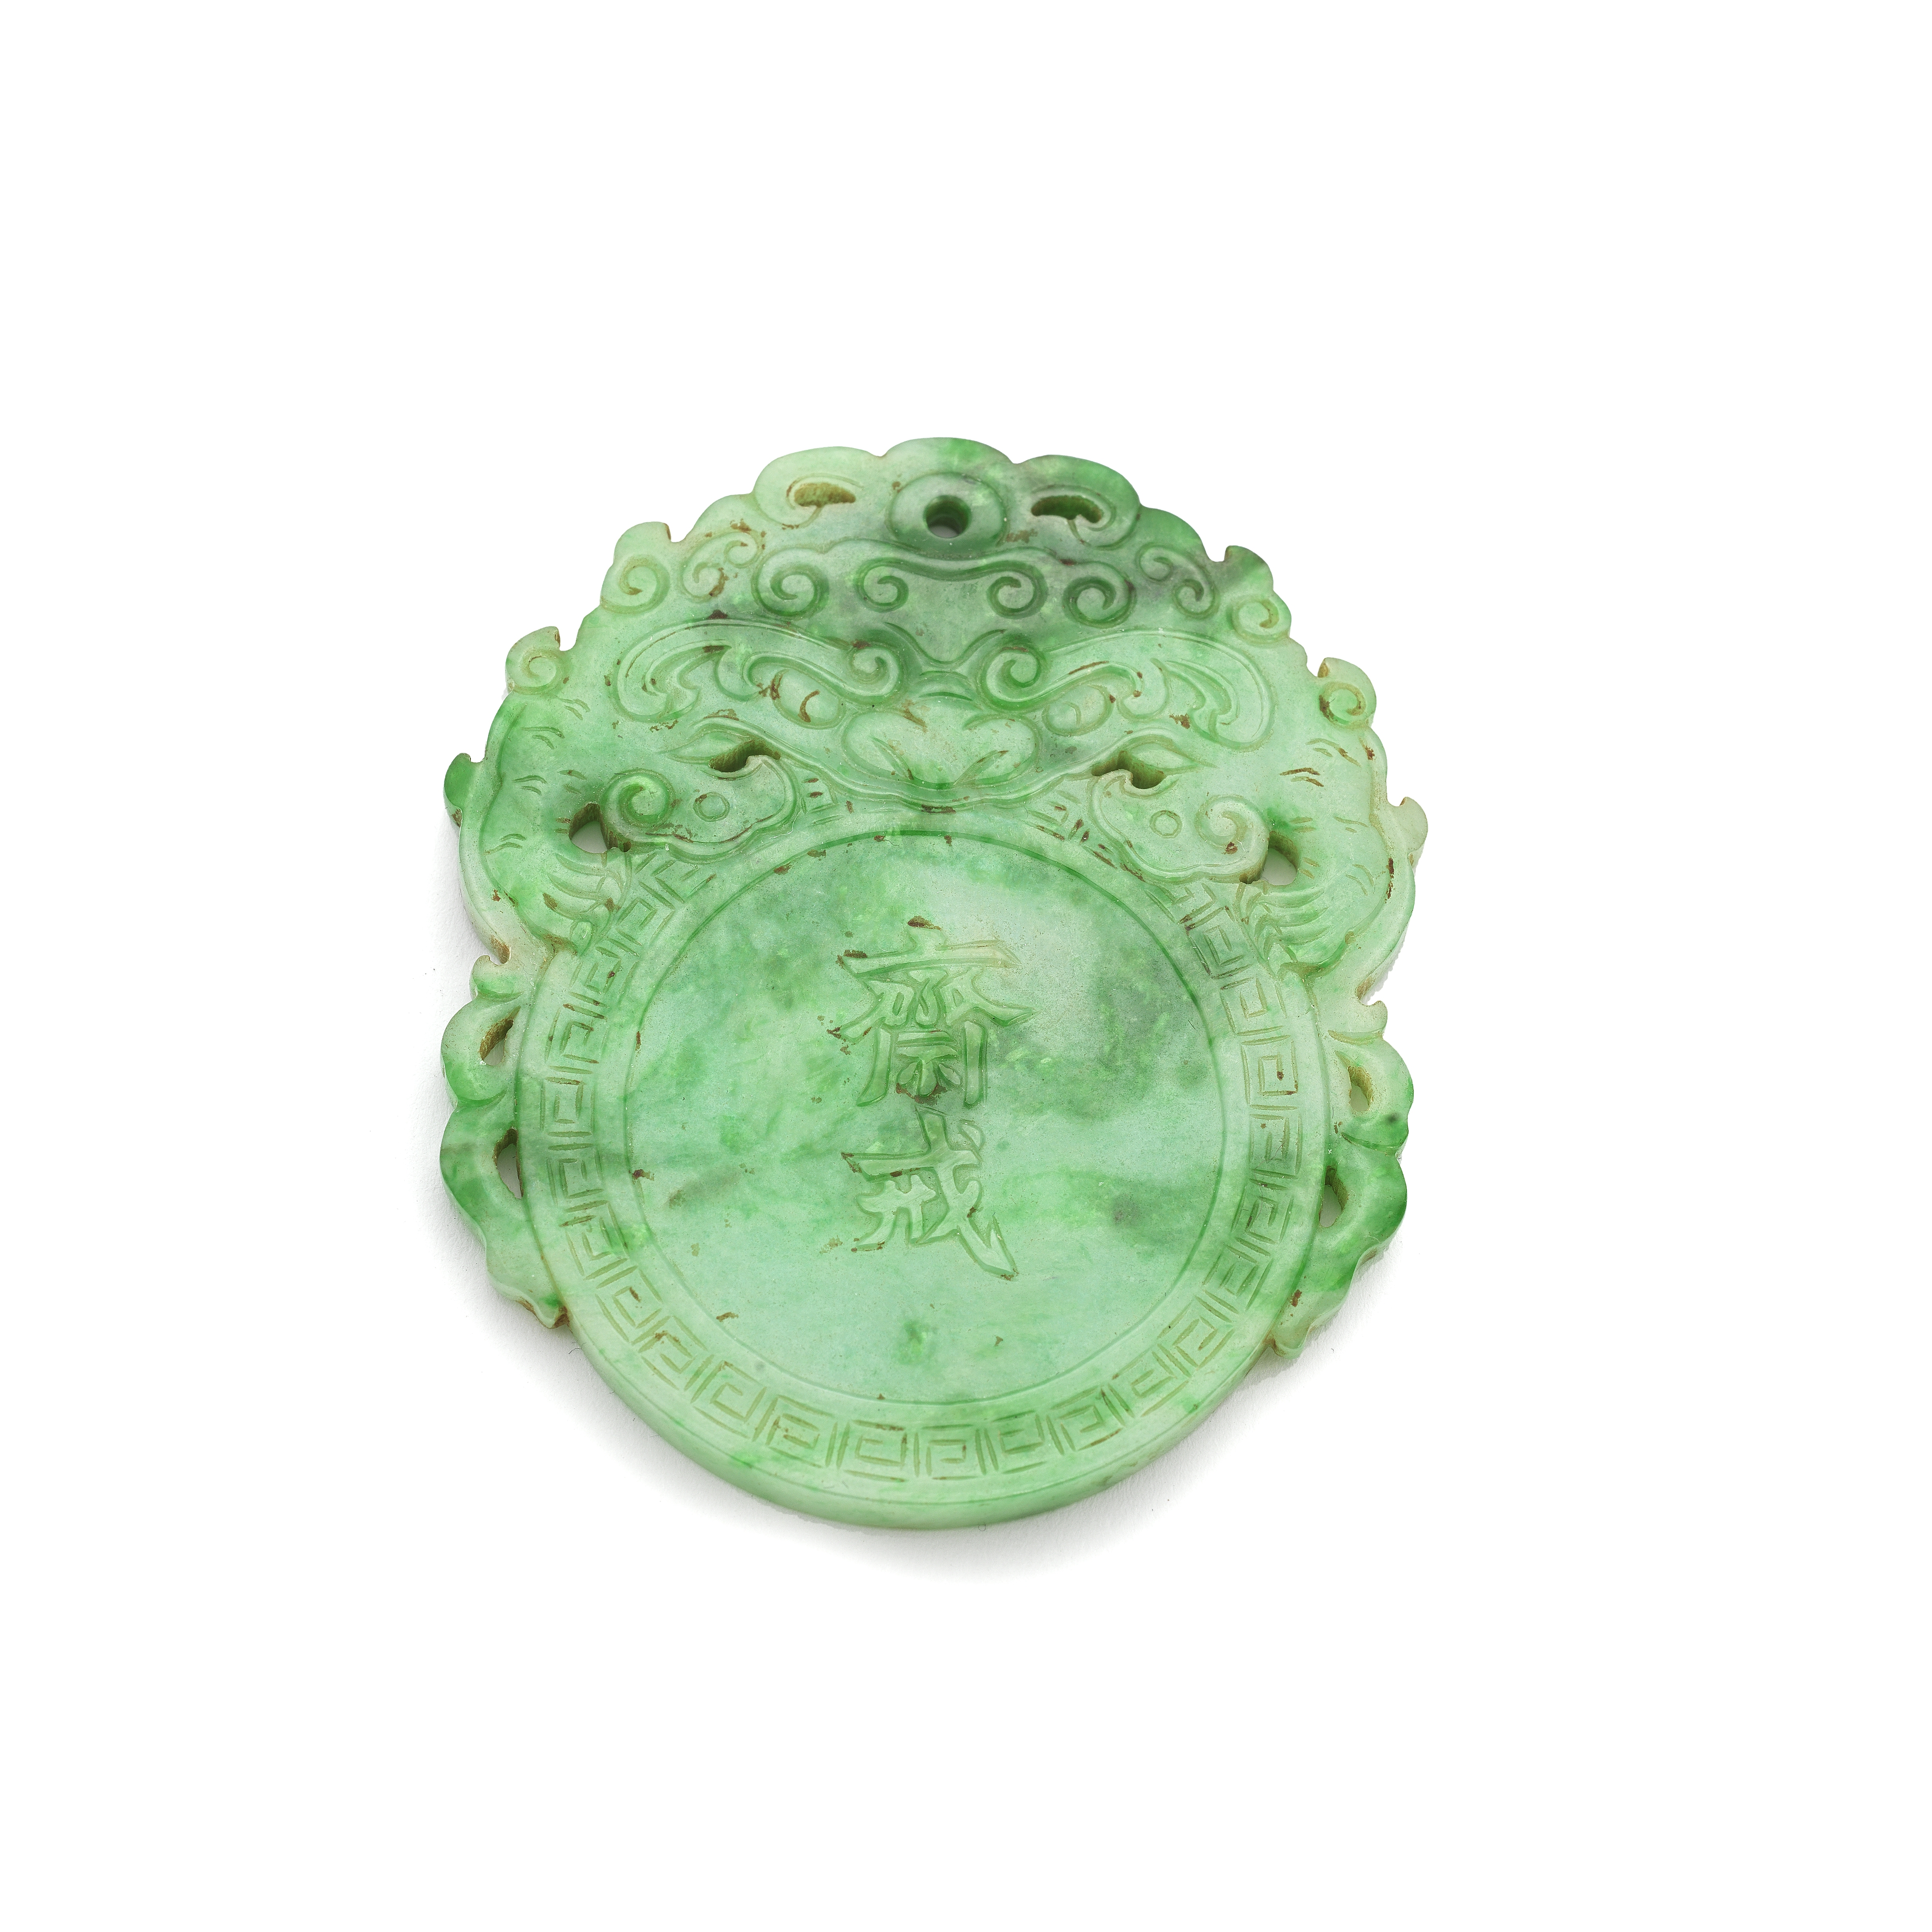 A JADEITE 'ABSTINENCE' PIERCED PENDANT Late Qing Dynasty